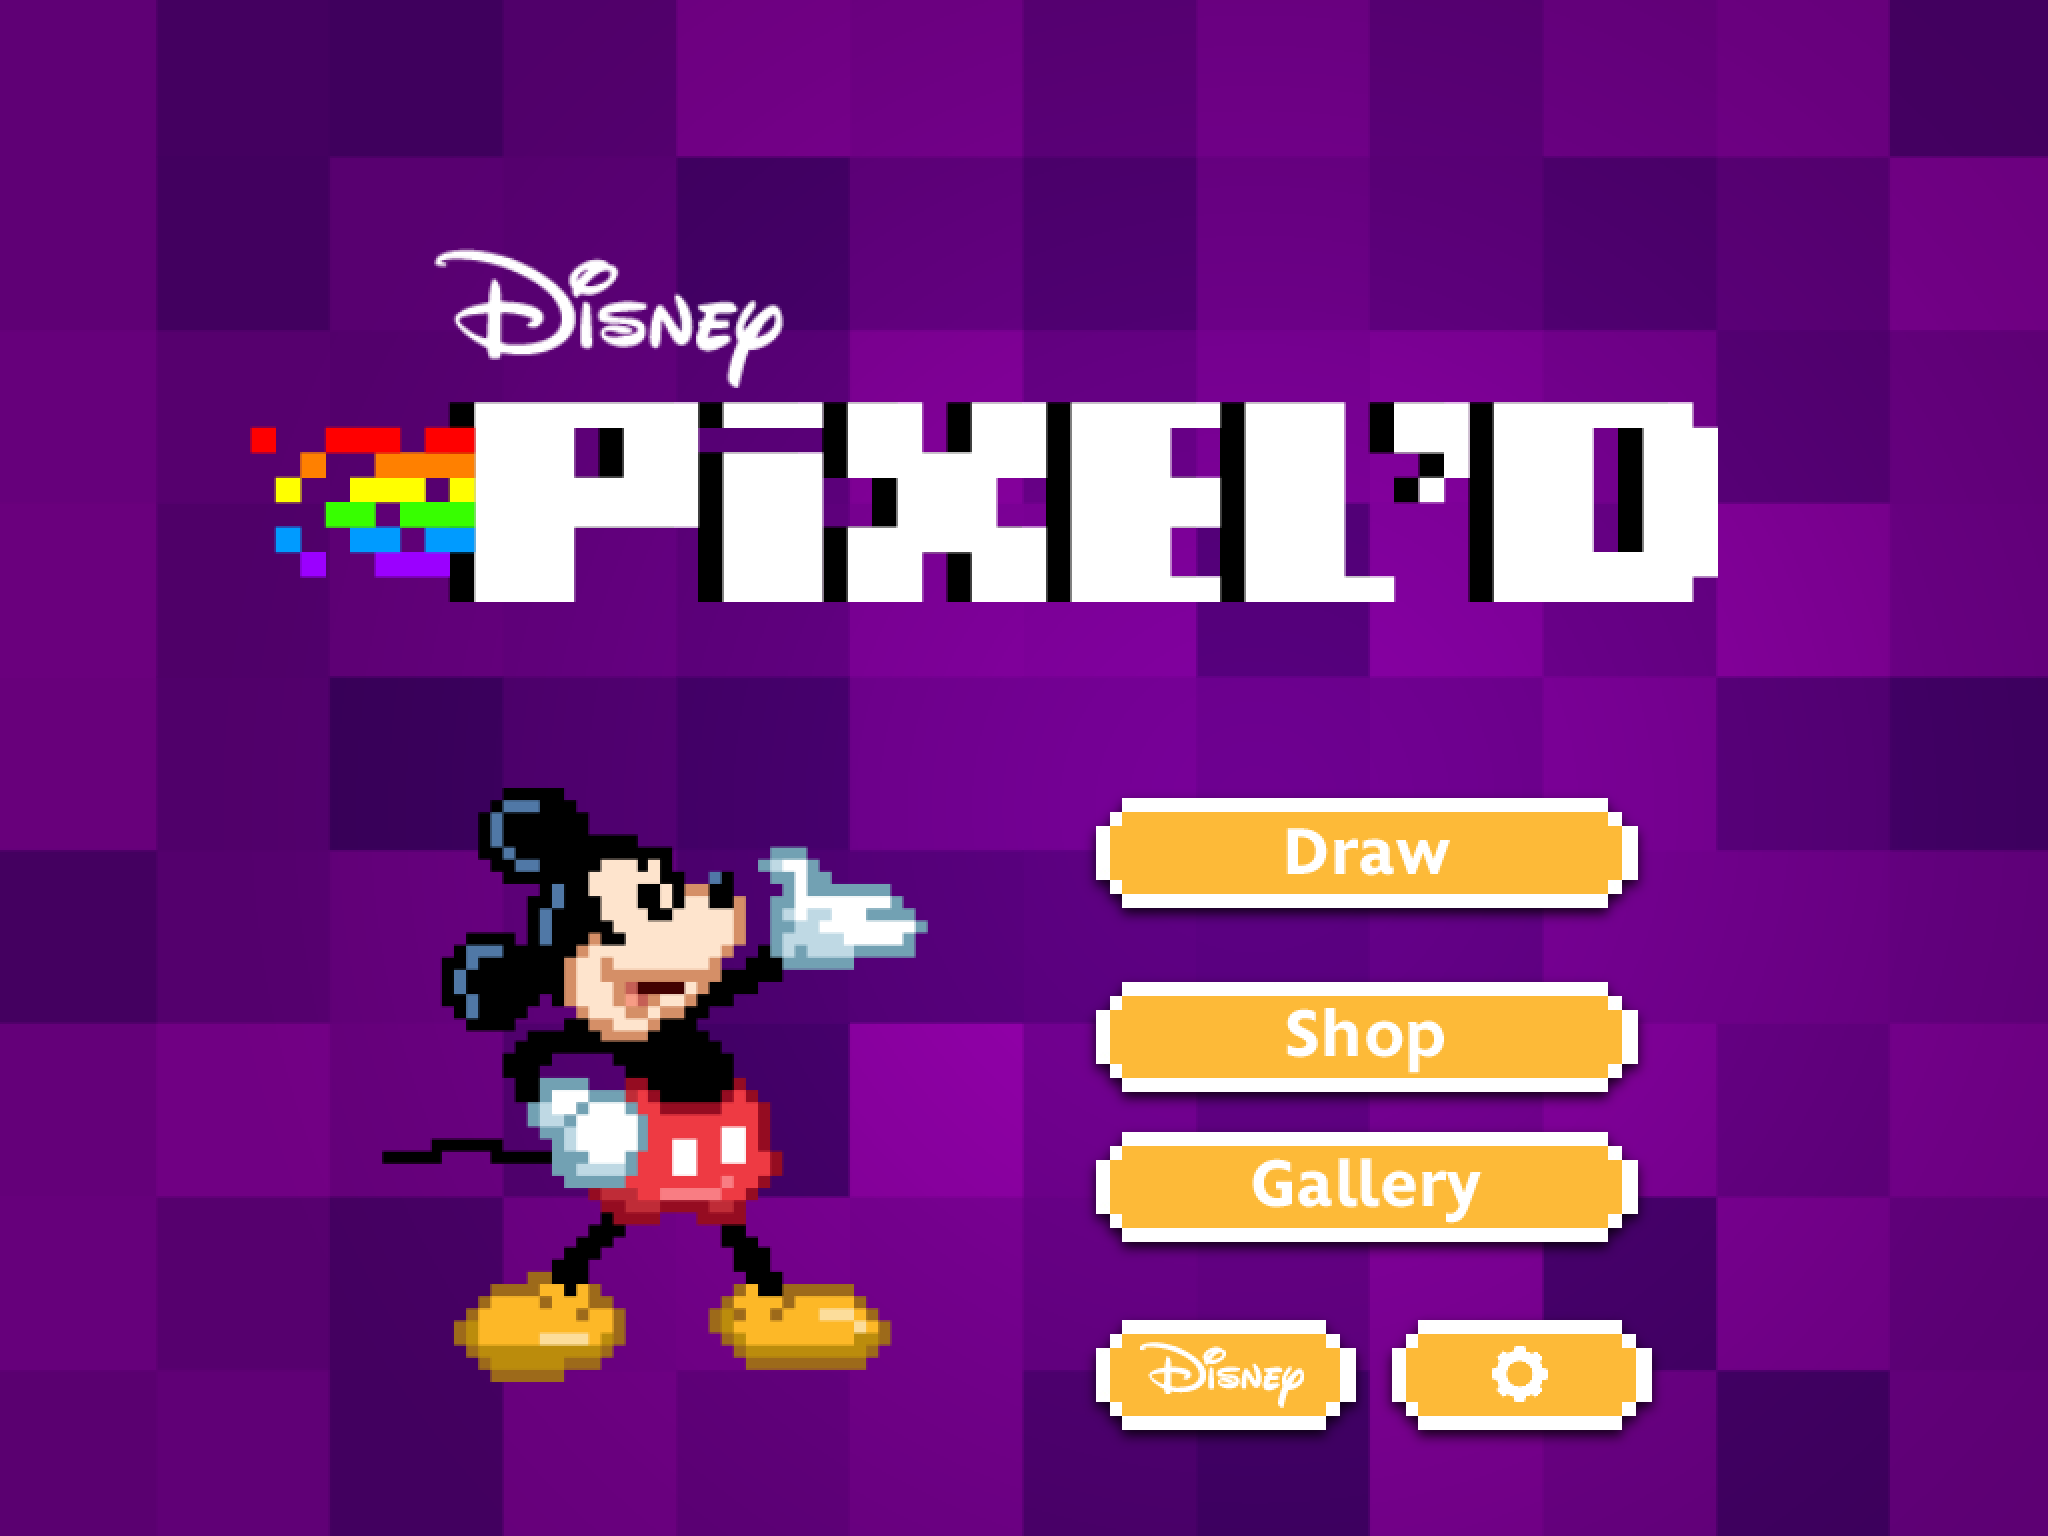 Excel At Pixel Art And Animation With Disney's Pixel'd